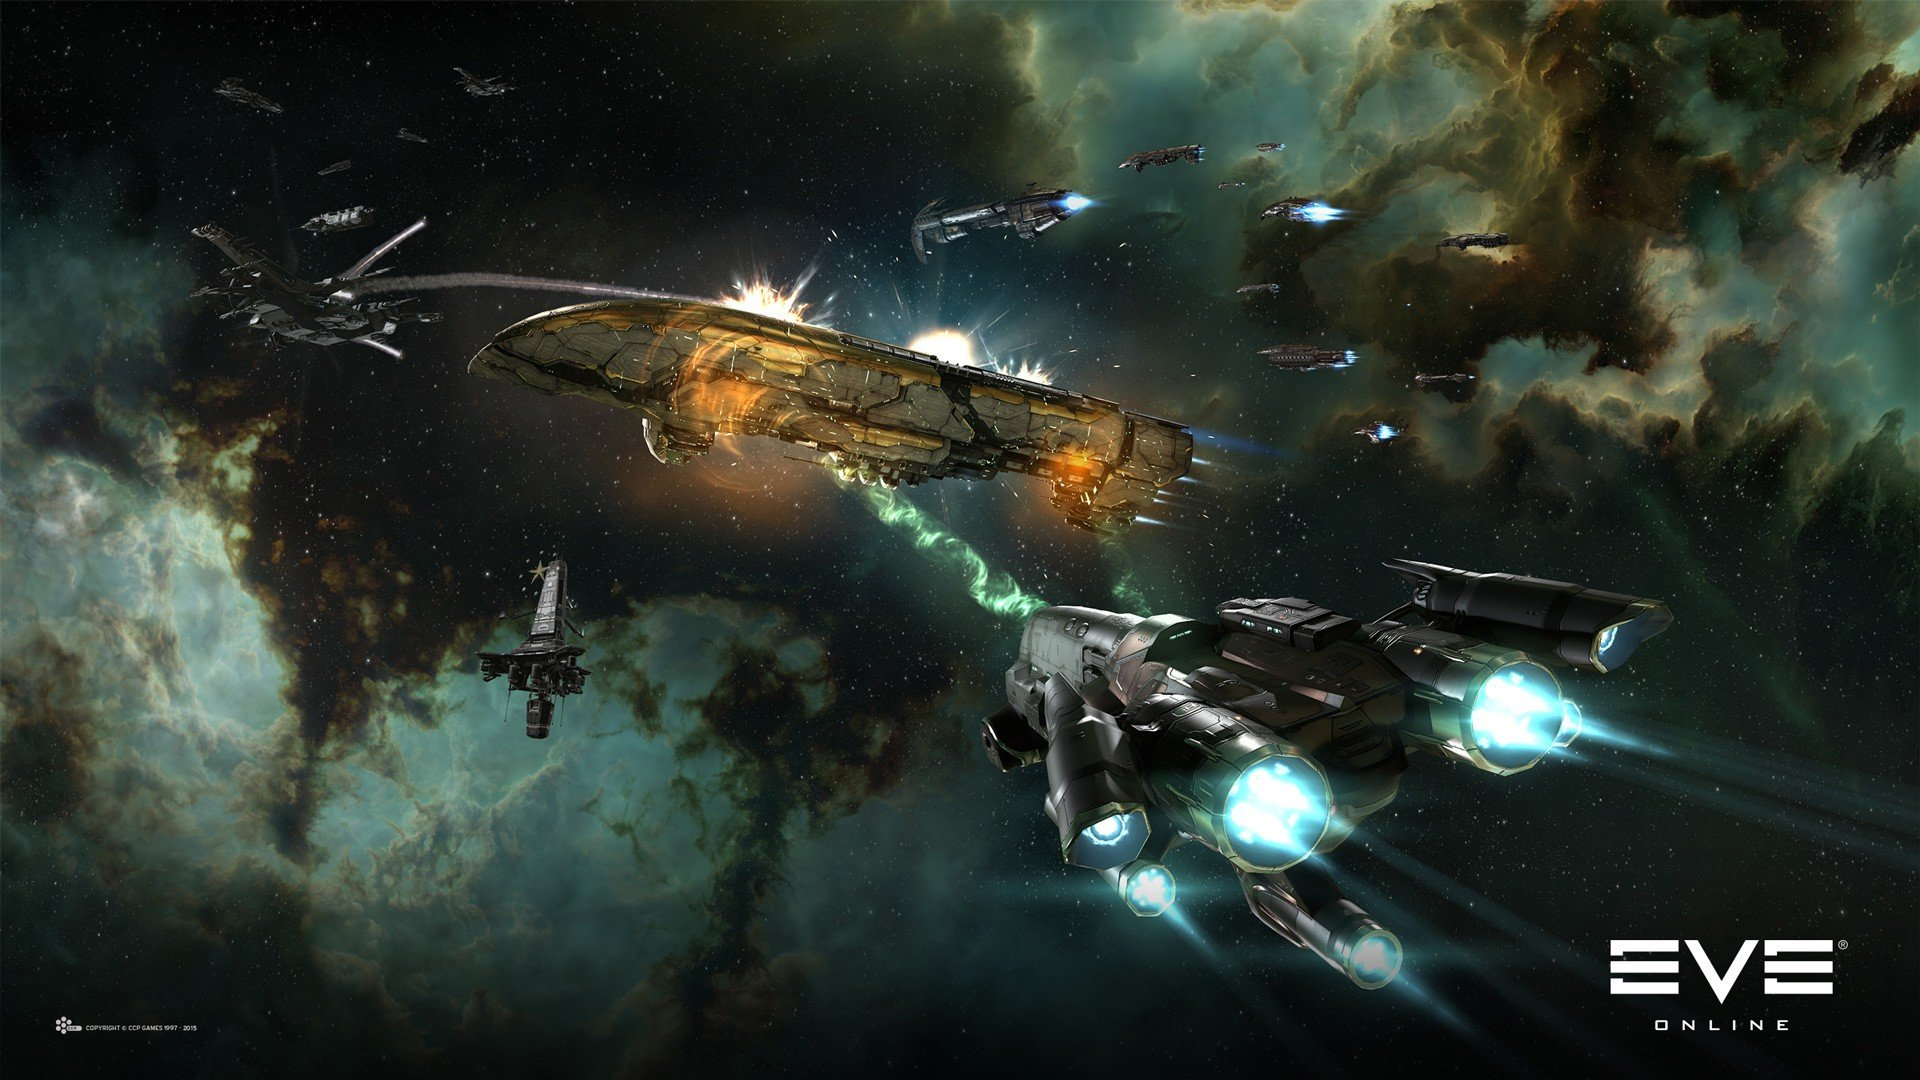 Download Hd 1080p EVE Online Computer Wallpaper ID169261 For Free